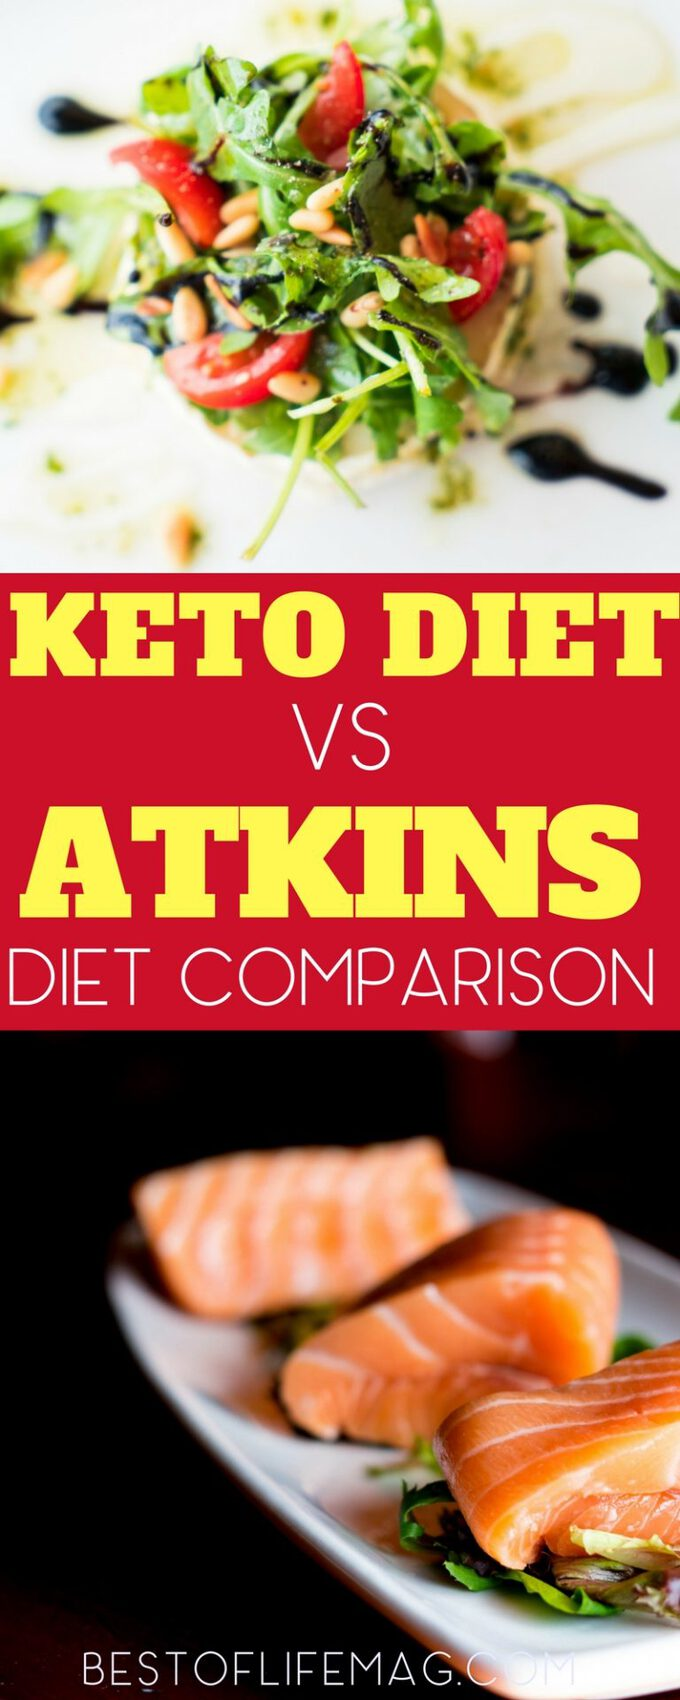 the atkins diet vs the food The atkins diet has also some similarities with the paleo diet, especially when it comes to certain types of food eliminated from the diets however, unlike the paleo diet , the atkins diet targets weight loss as its main priority.